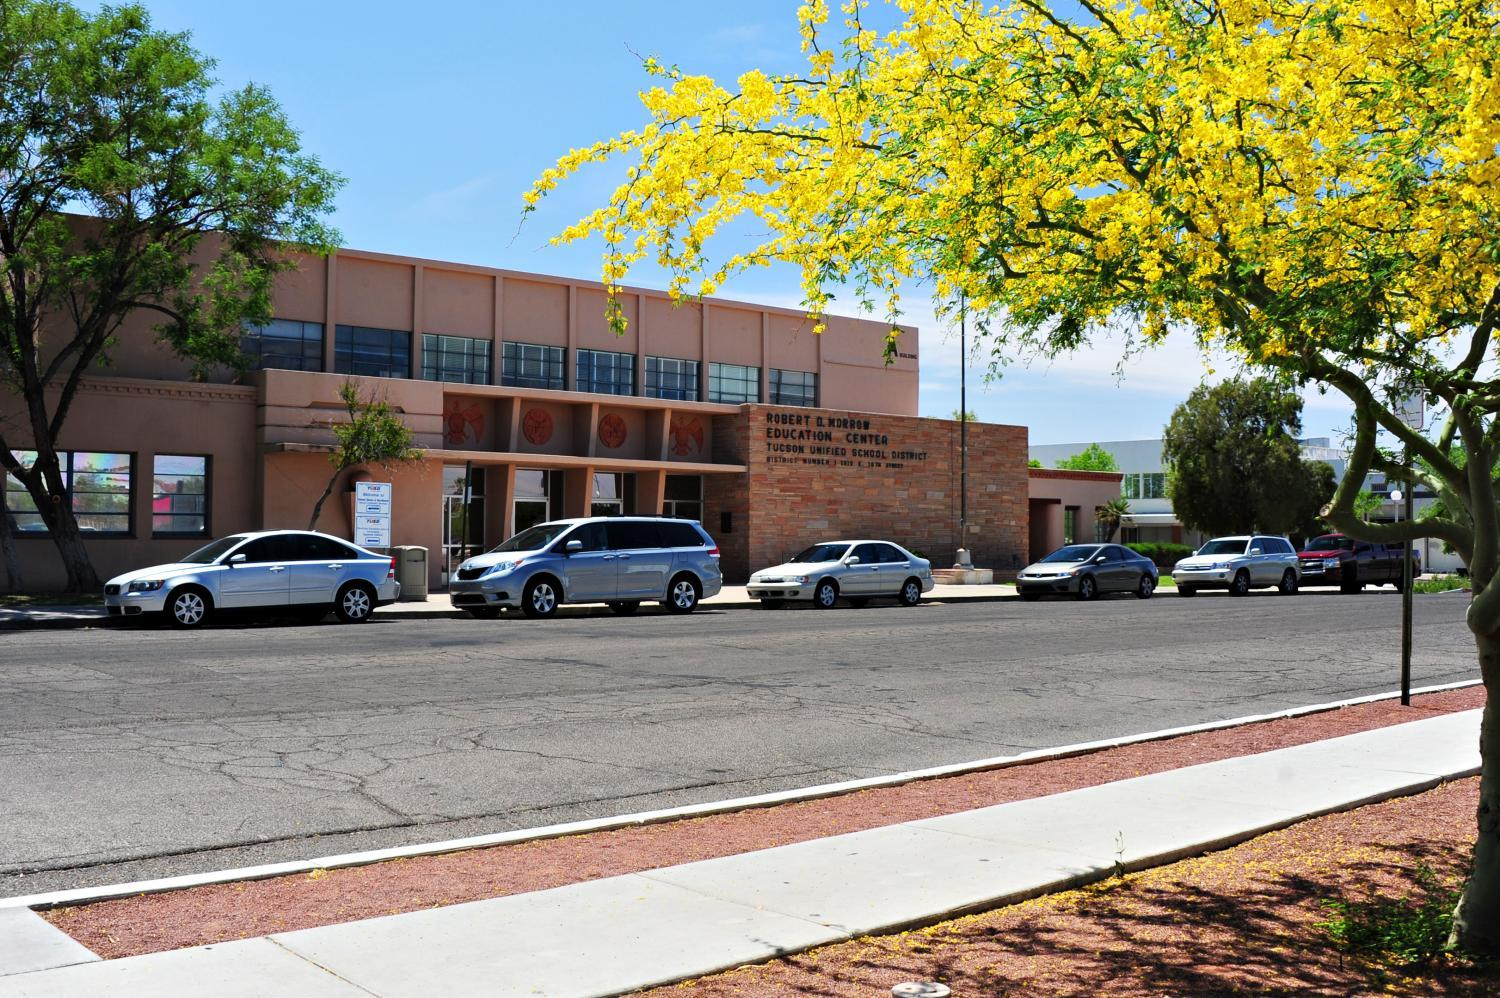 Tucson Unified School District building